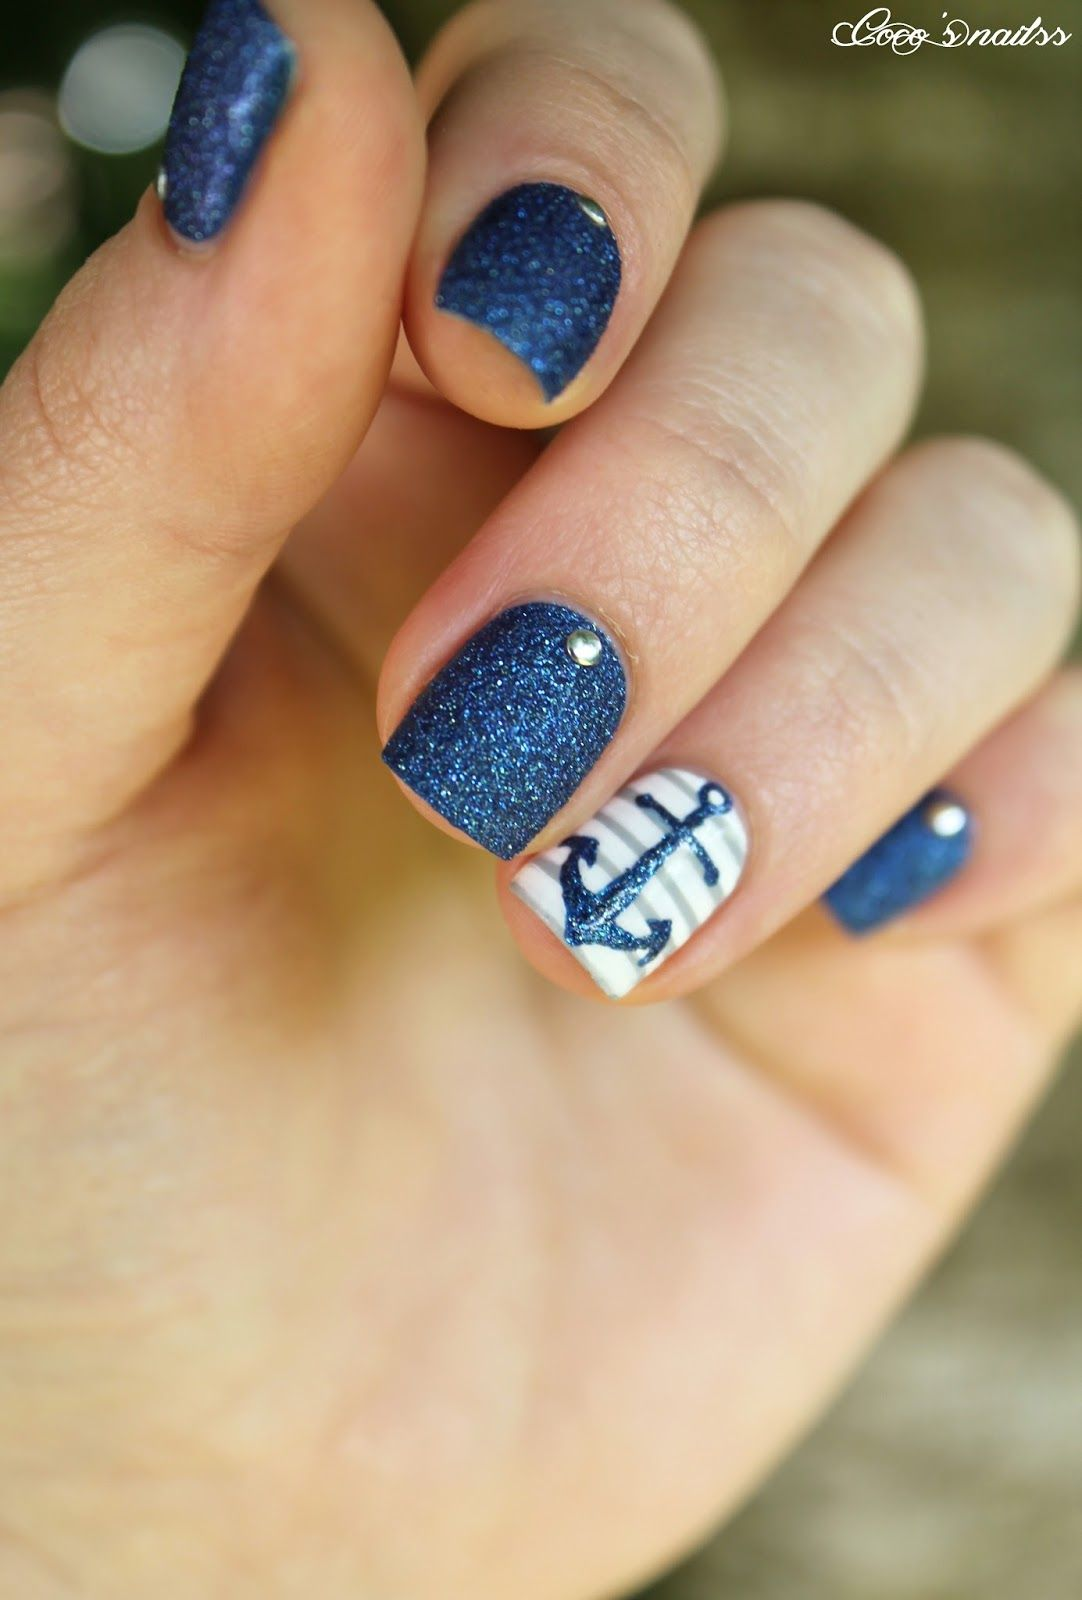 Cocosnailss Nail Pinterest Cruise Nails Ongles And Anchor Nails